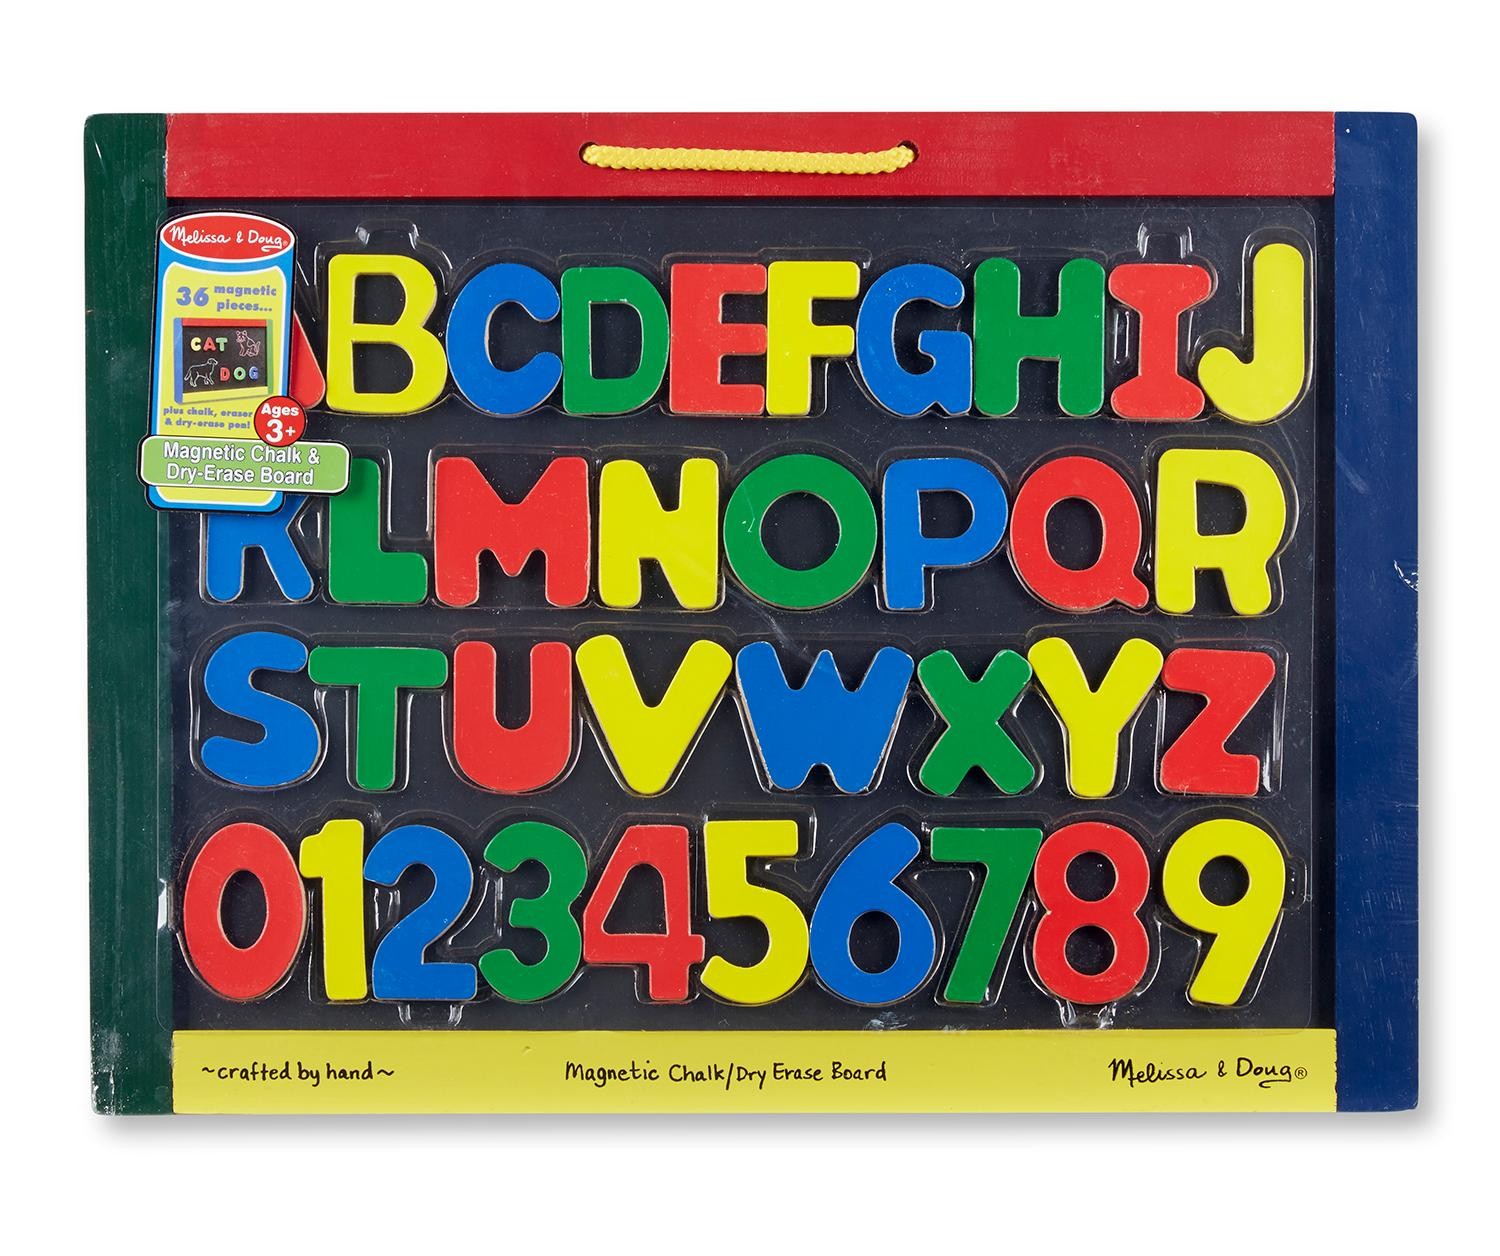 Amazon.com: Melissa & Doug Magnetic Chalkboard and Dry Erase Board